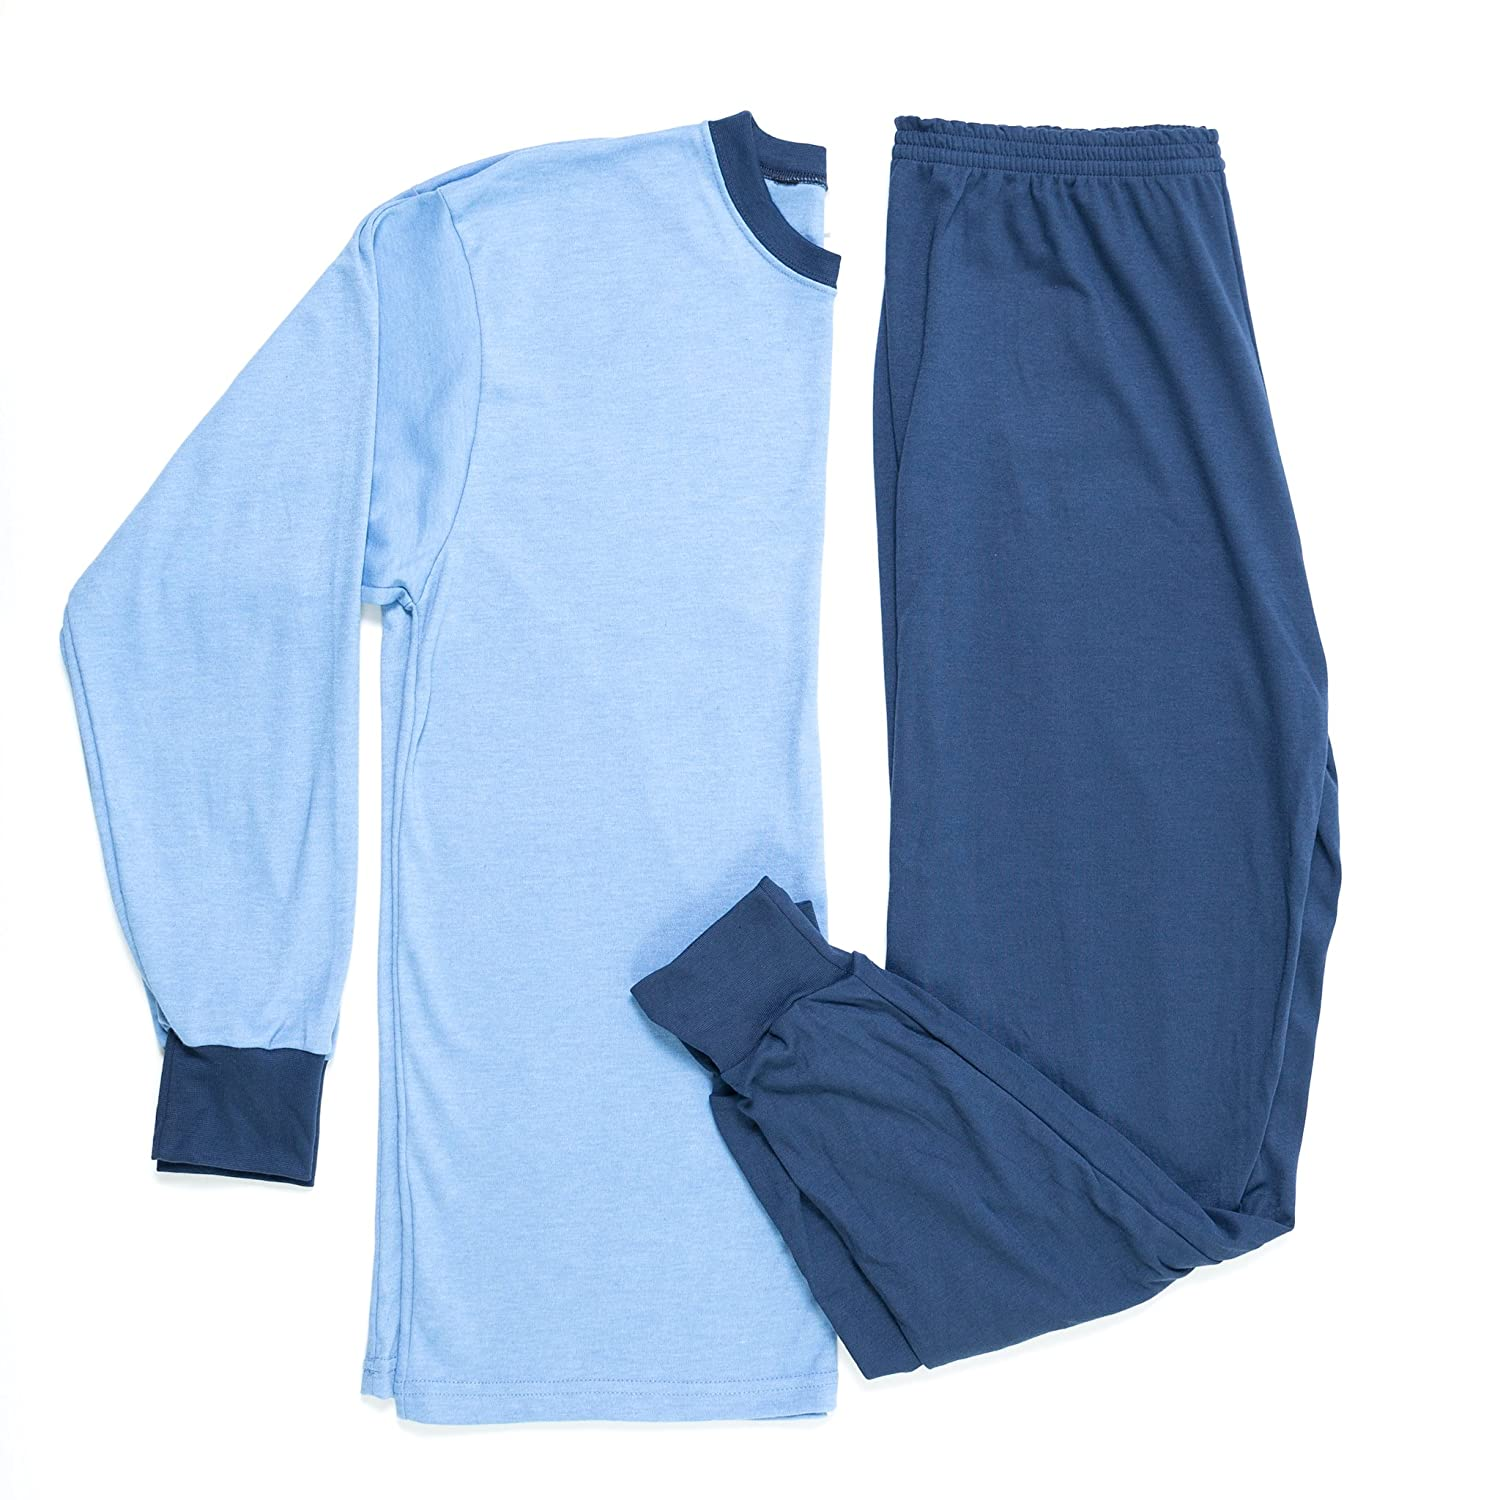 SPORTSMAN Men's Pajamas, Set in Cotton / Polyester SPORTSMAN Men' s Pajamas